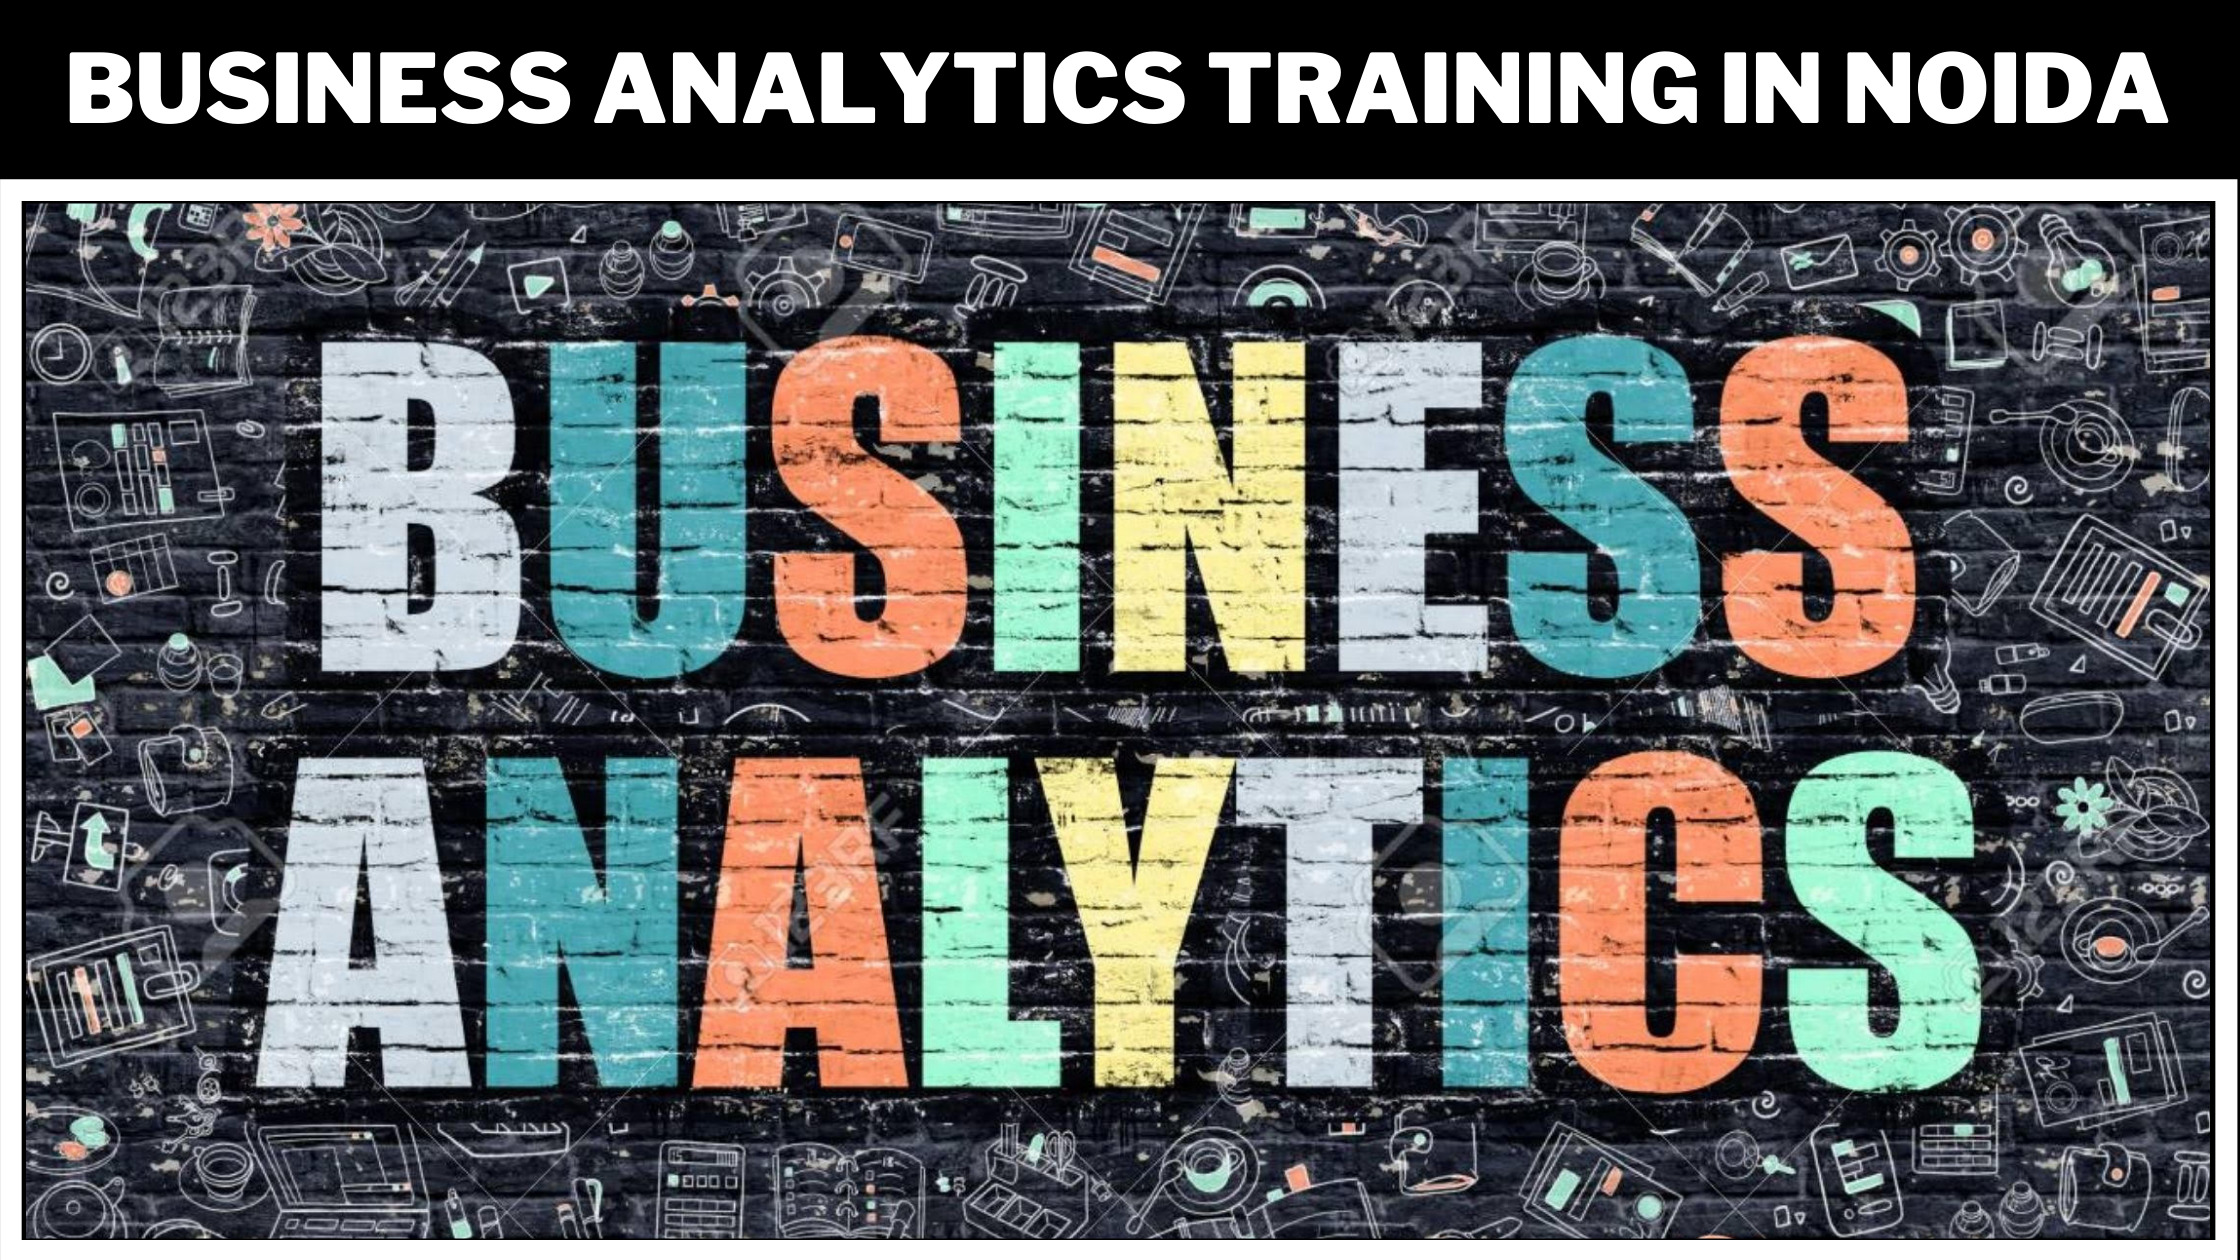 business_analytics_training_in_noida-background.jpeg